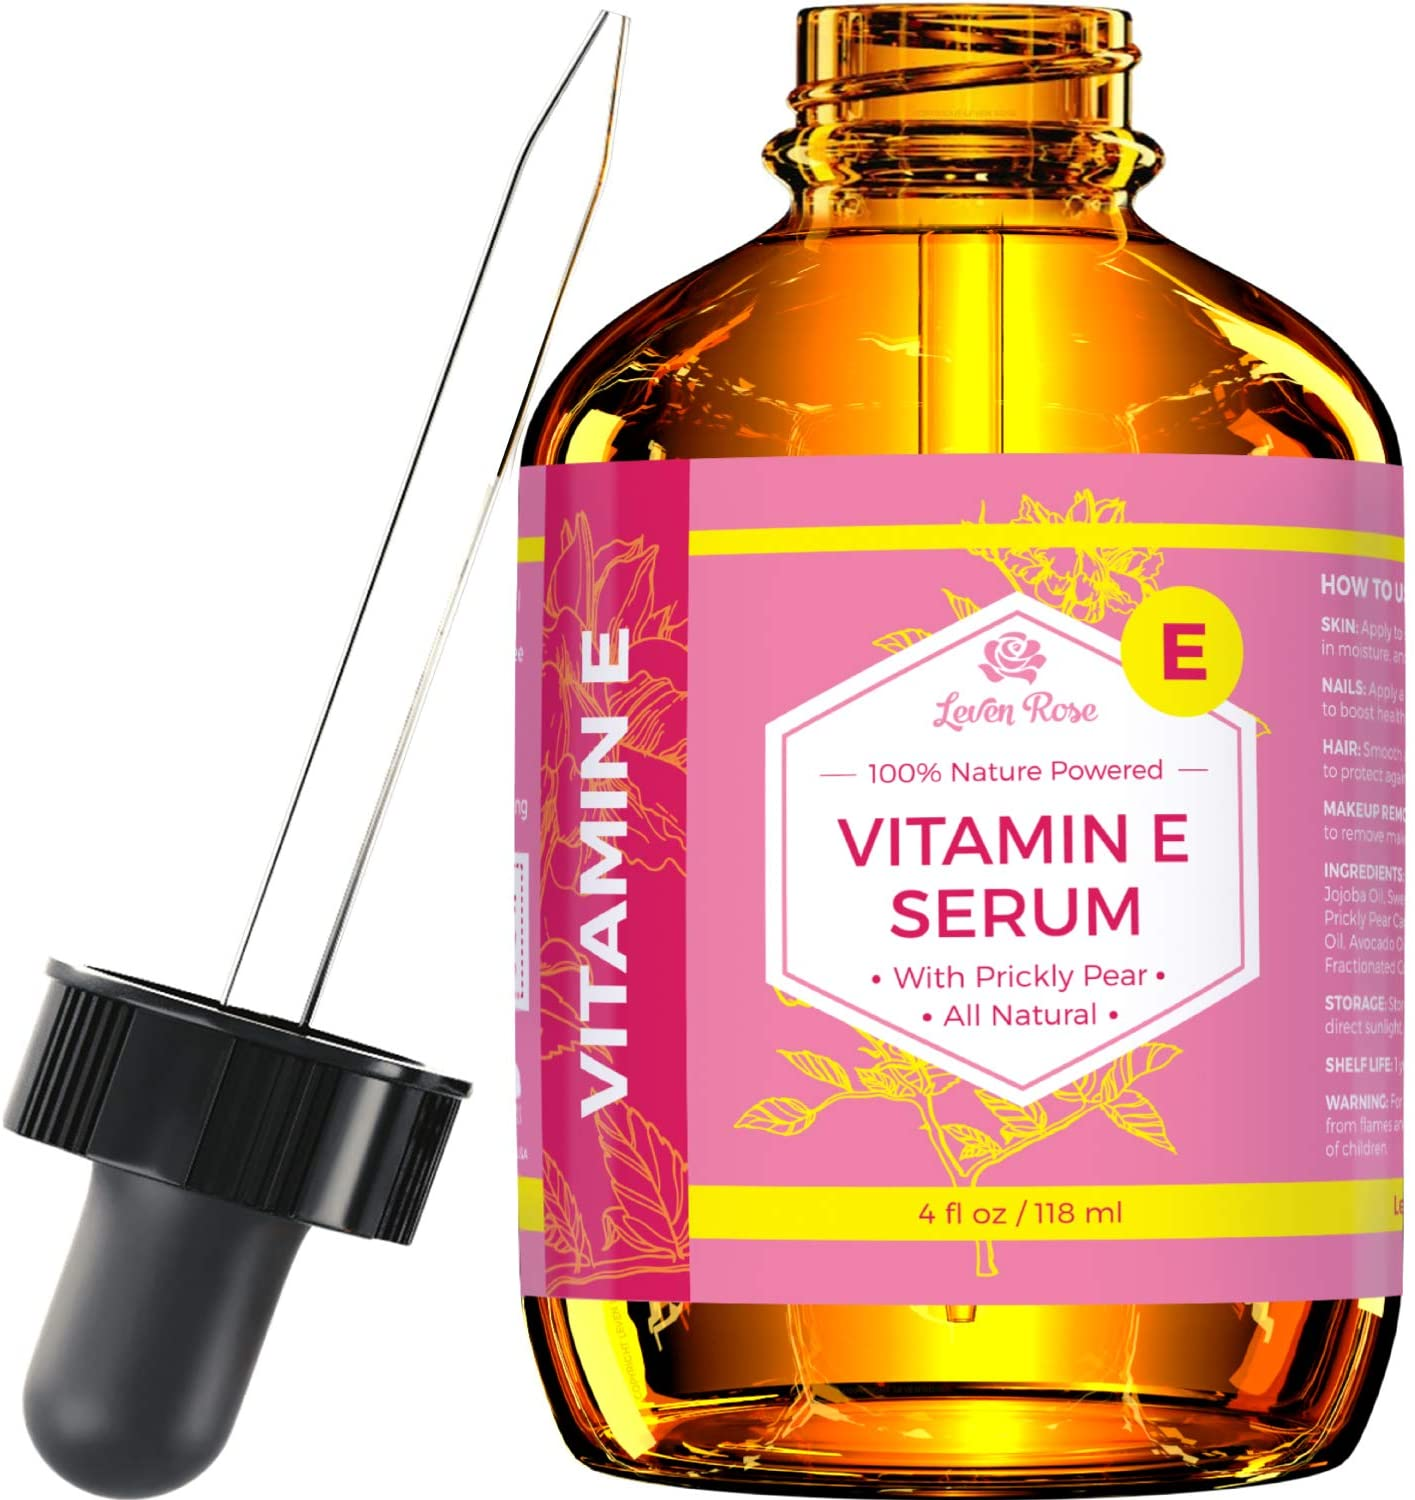 Vitamin E Serum by Leven Rose 100% Pure Organic All Natural Face, Dry Skin & Body Moisturizer Treatment, Hair & Nail Growth Oil, Pure Makeup Remover, Acne Cleansing Oil Large 4 oz